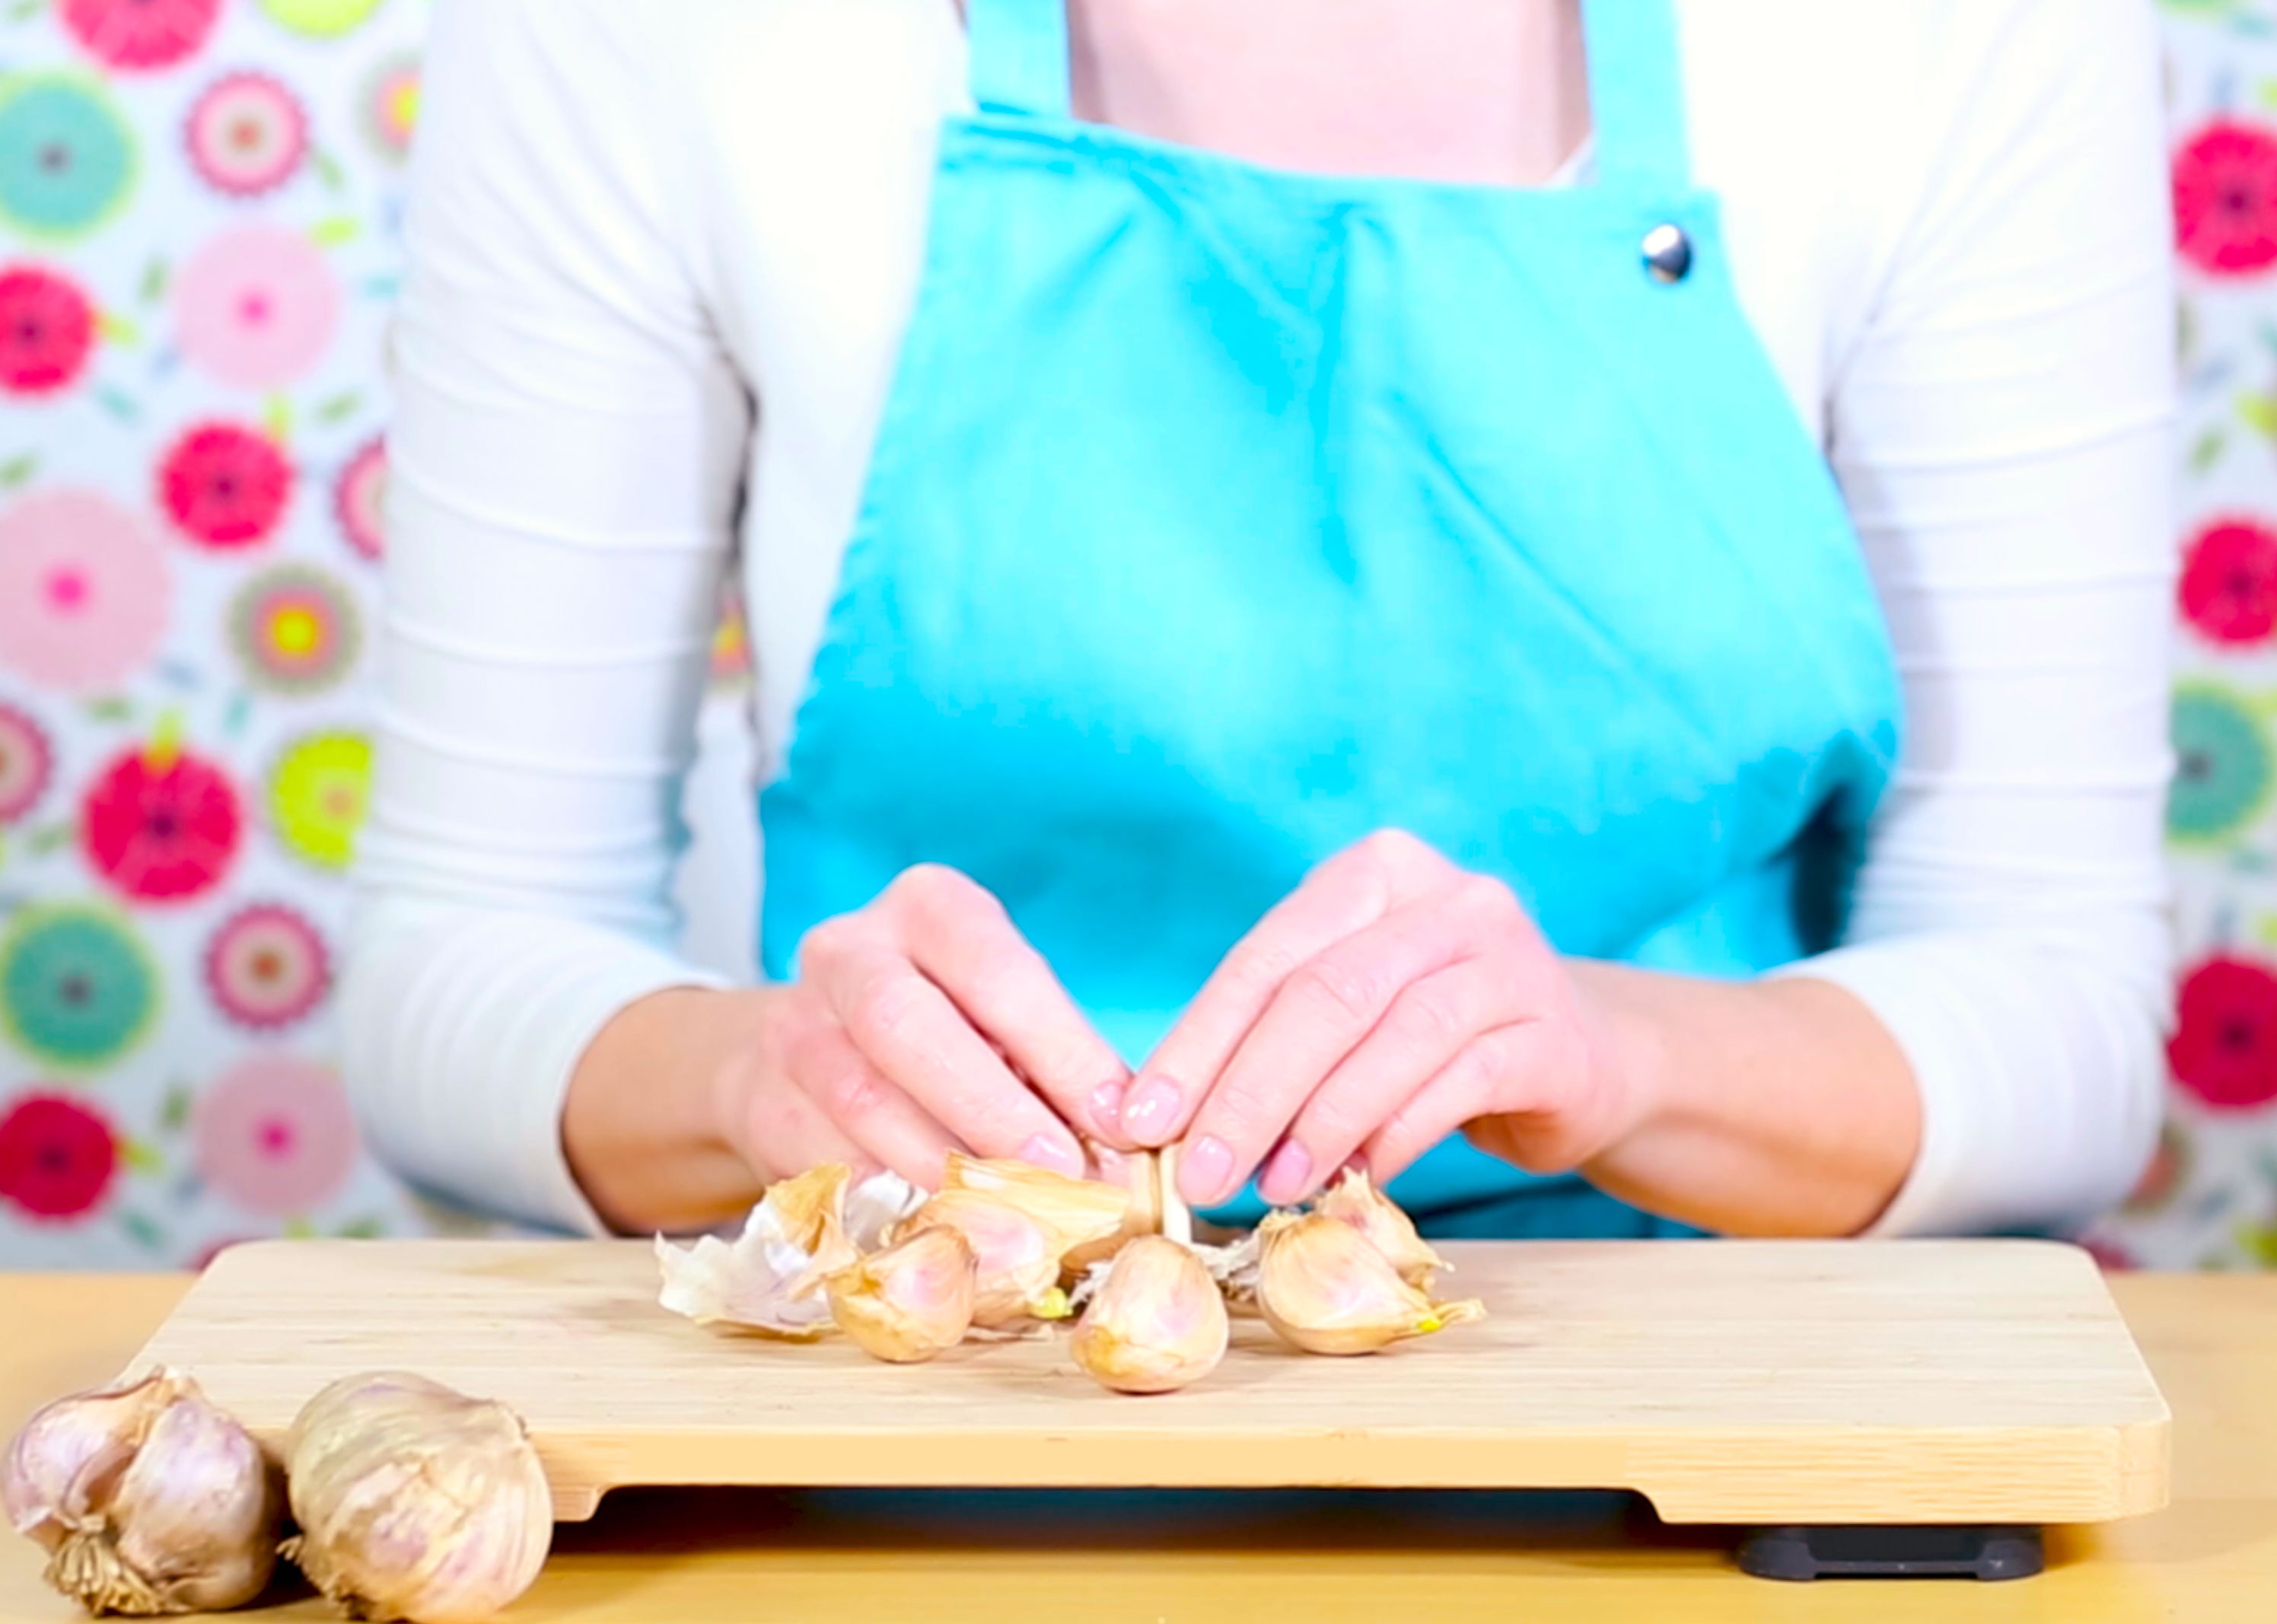 Colourful image with a woman in a sky blue apron who is separating garlic cloves from the large bulb